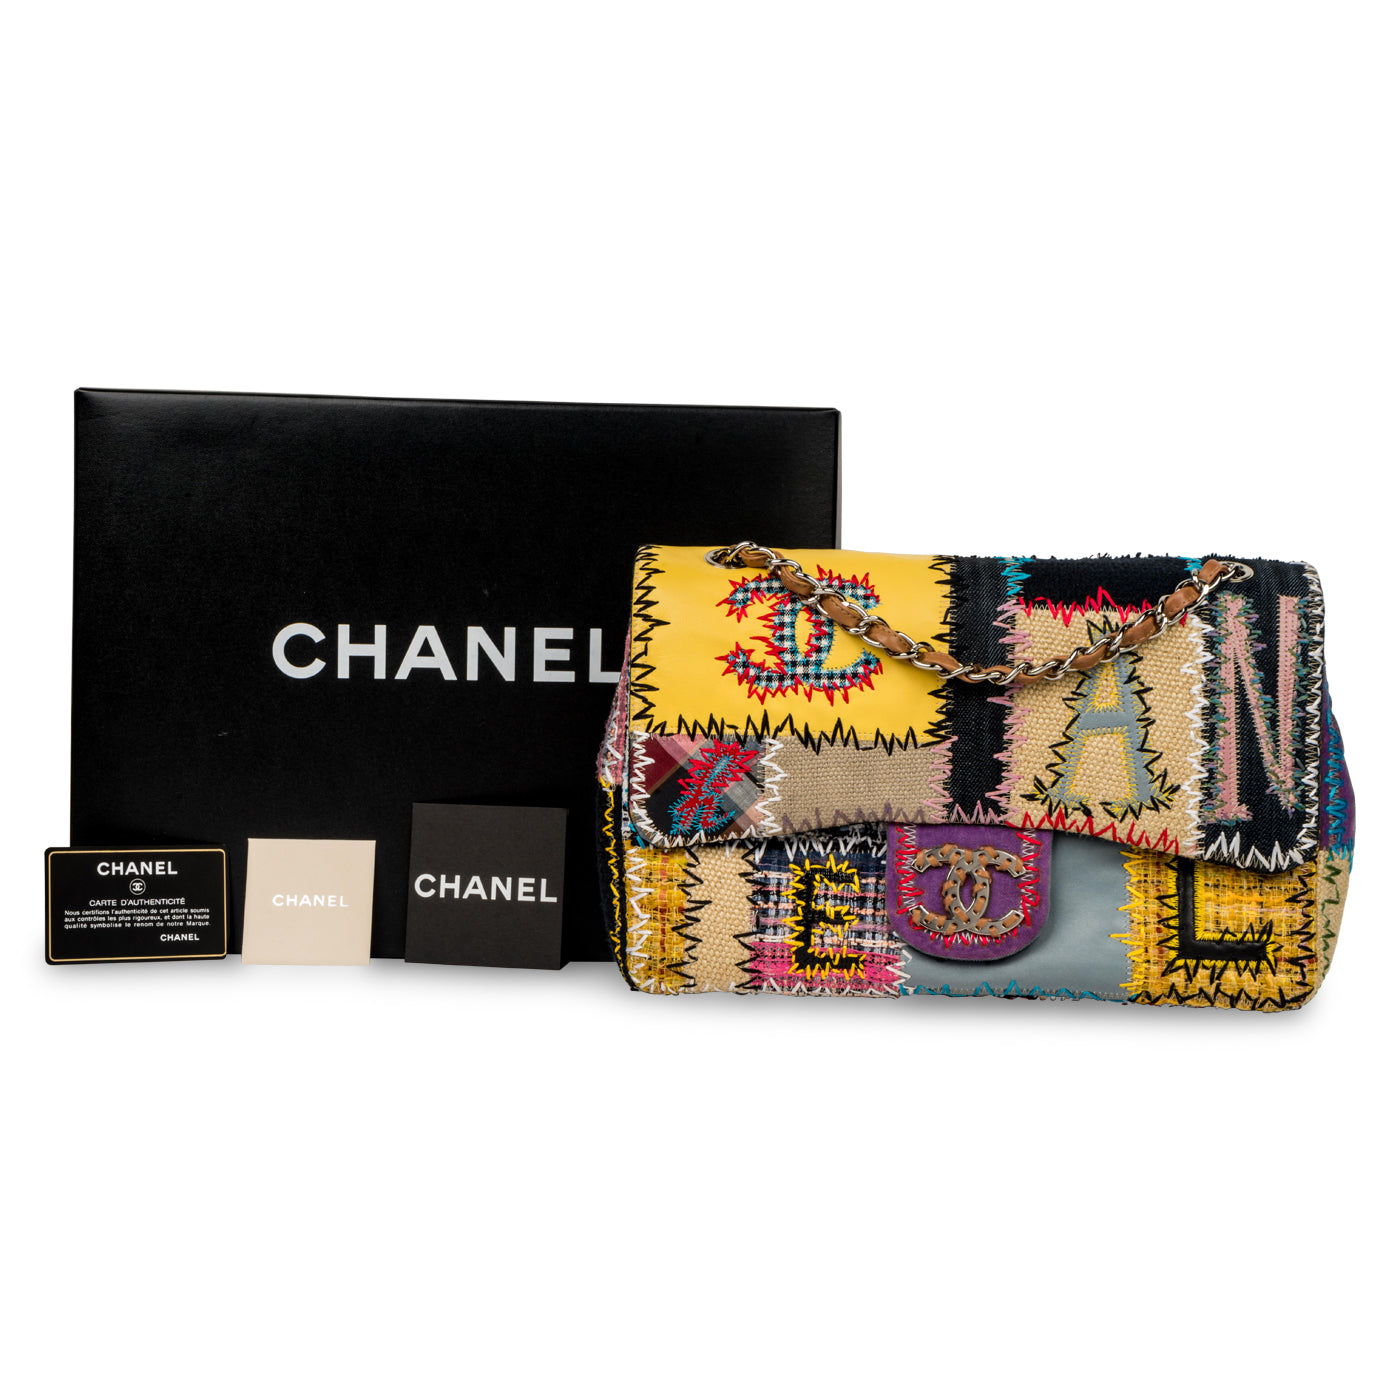 078e182f4aa2 Chanel - Patchwork Jumbo Classic Flap Bag - Pre-Loved | Bagista